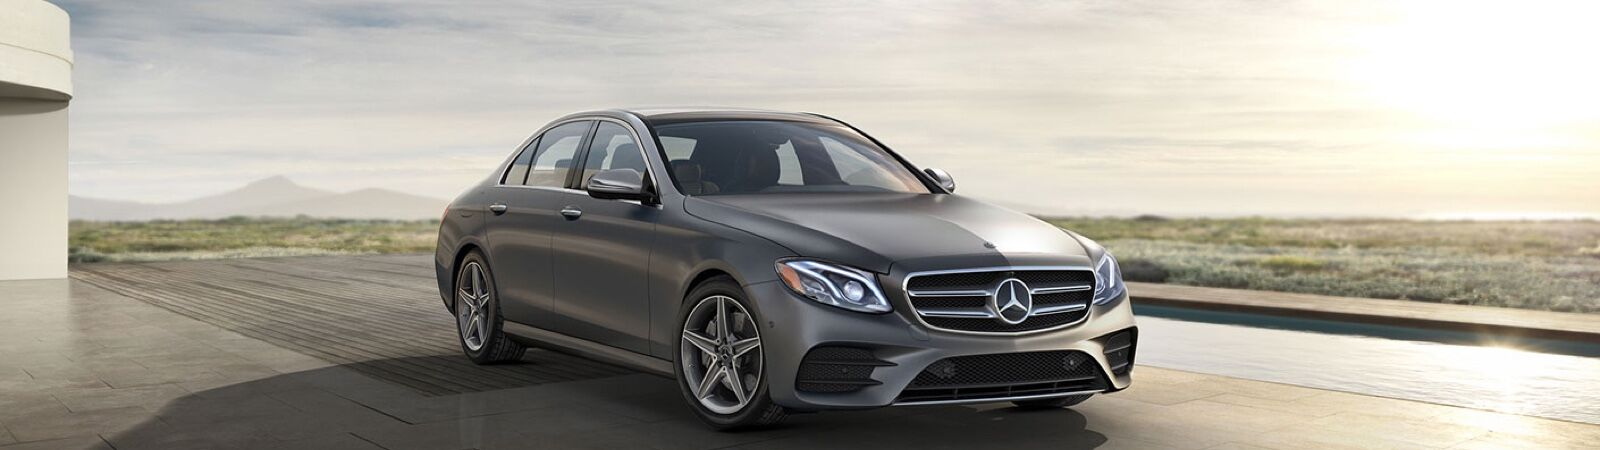 The 2018 Mercedes-Benz E-Class sedan Loeber Mercedes-Benz Chicago, IL